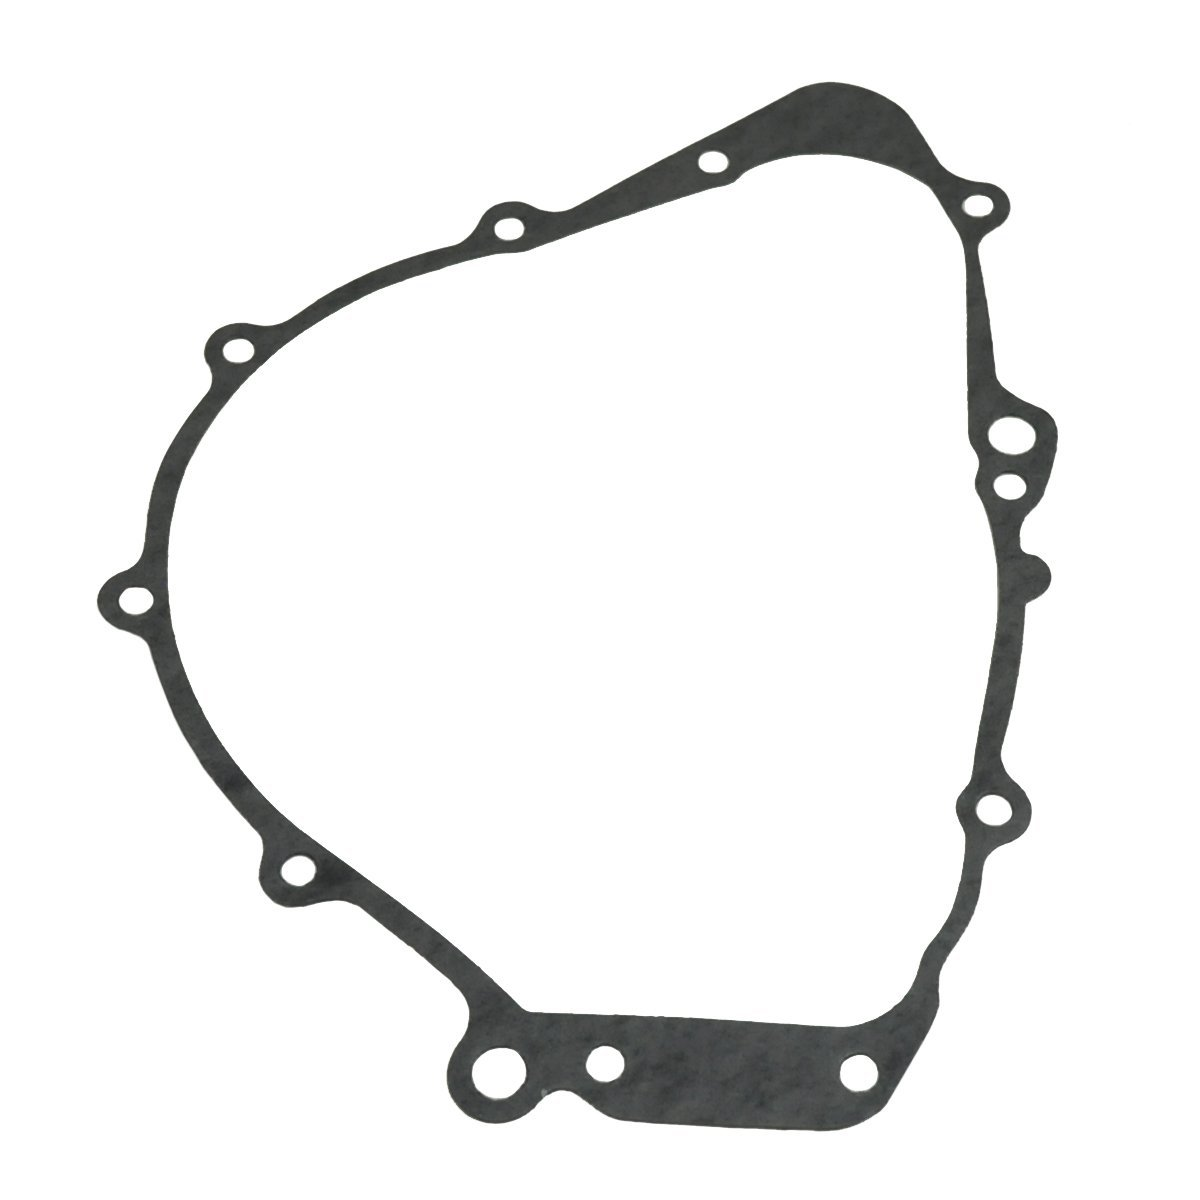 Buy Stator Crankcase Cover Gasket Yamaha YFM 350 Big Bear